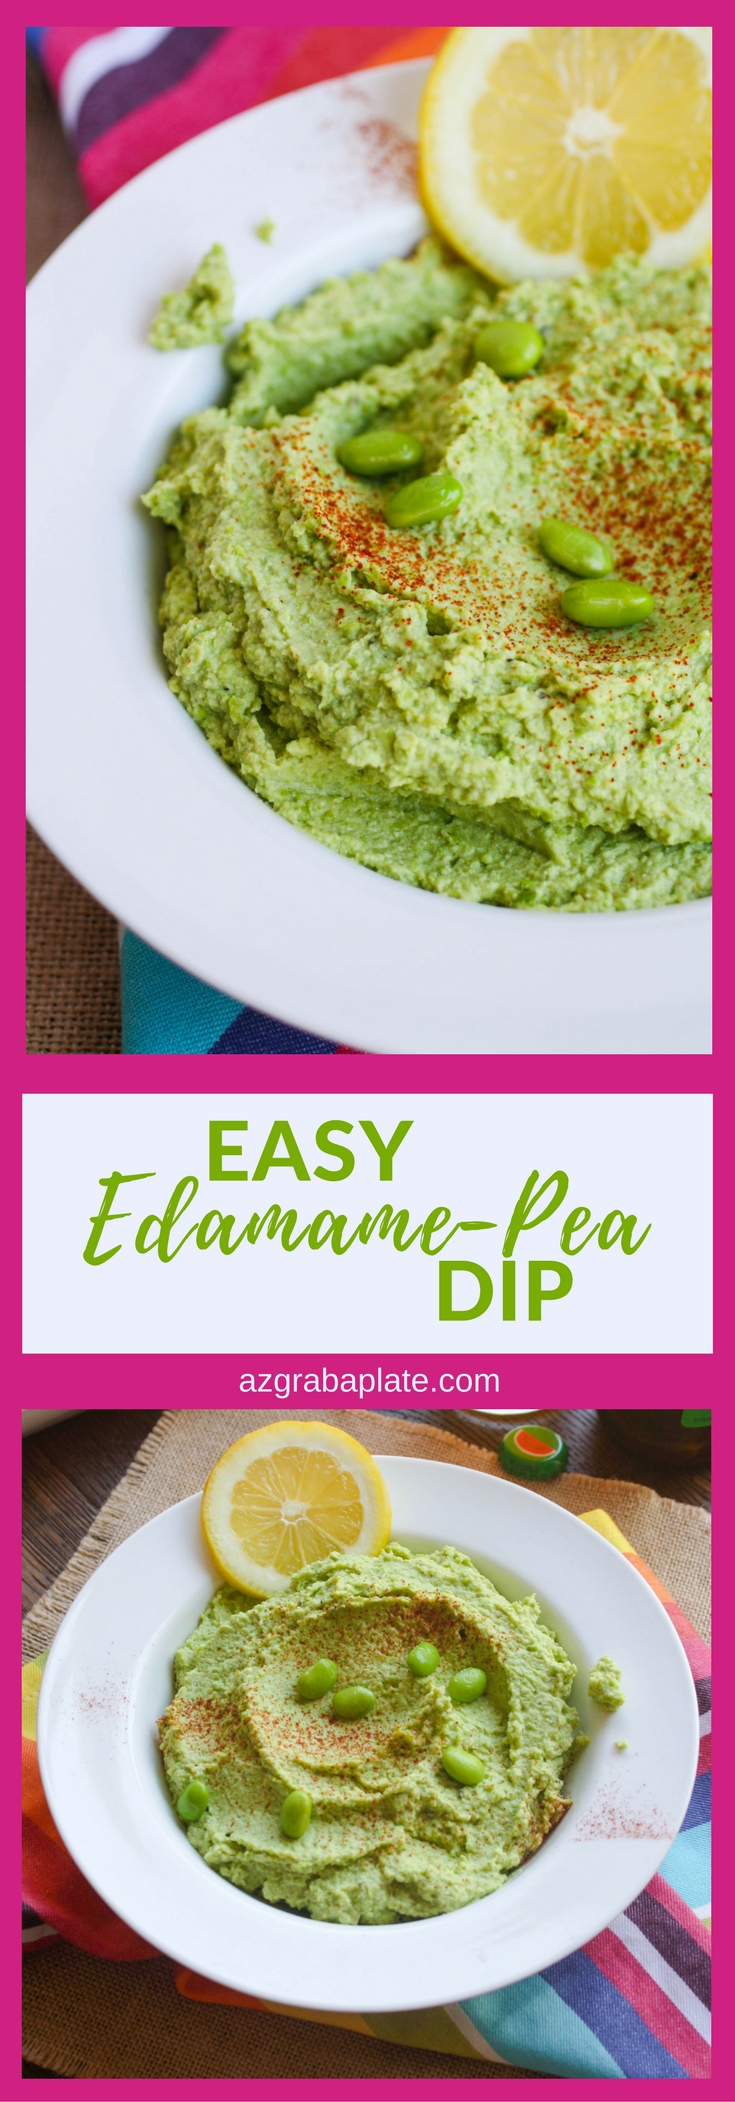 Easy Edamame-Pea Dip is fabulous for summer fun! Take it to a picnic, a party, or pack it in your lunch bag to enjoy anytime!